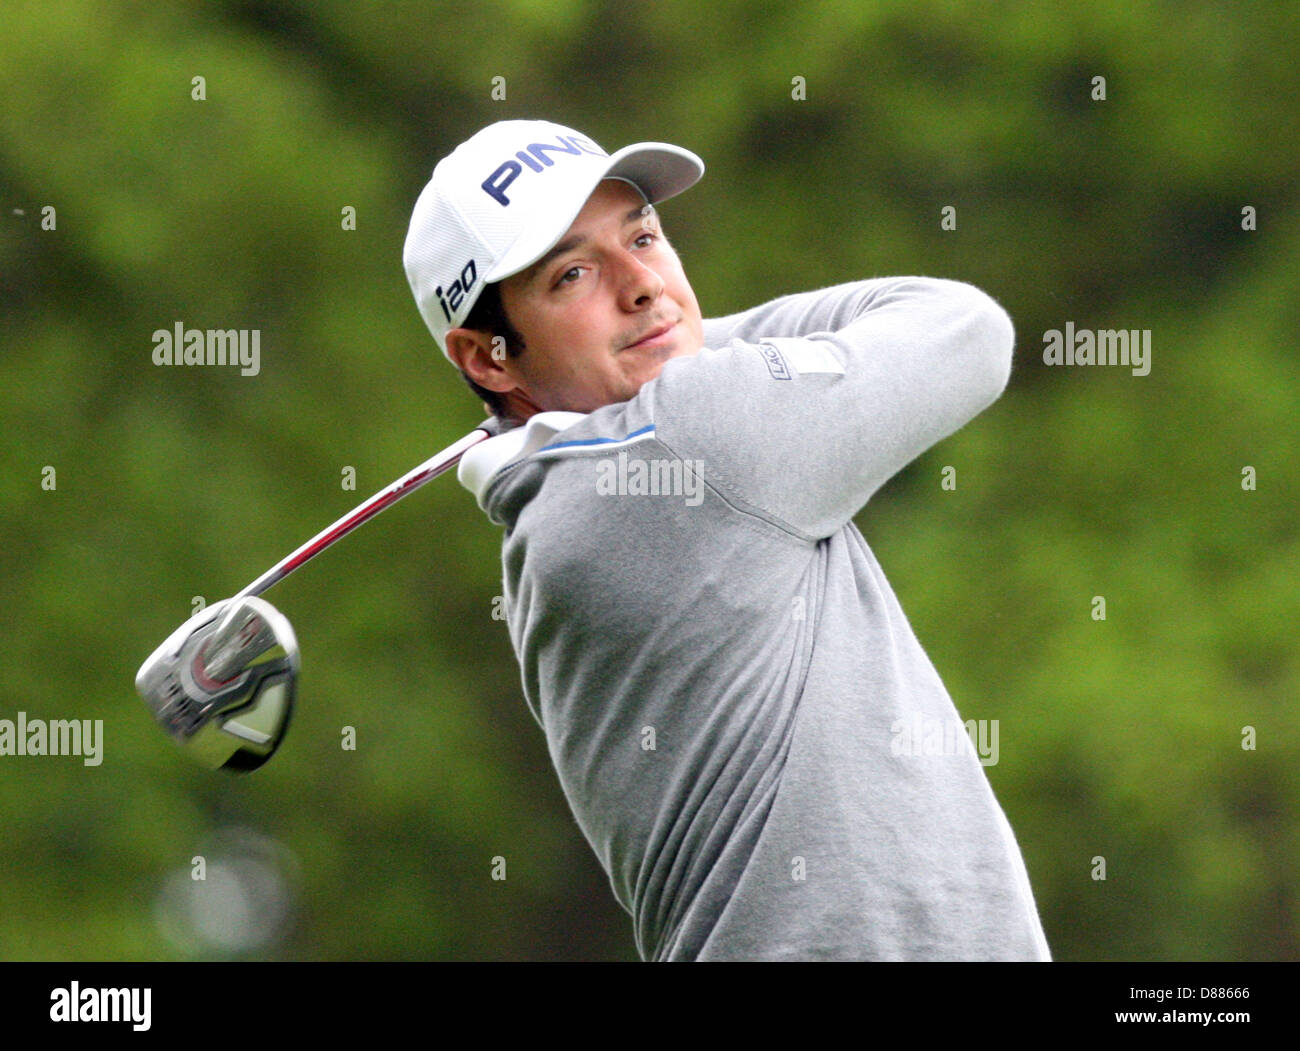 Wentworth, UK. 21st May 2013. Julien Quesne during  practice ahead of the BMW PGA Championships. Credit:  Action - Stock Image